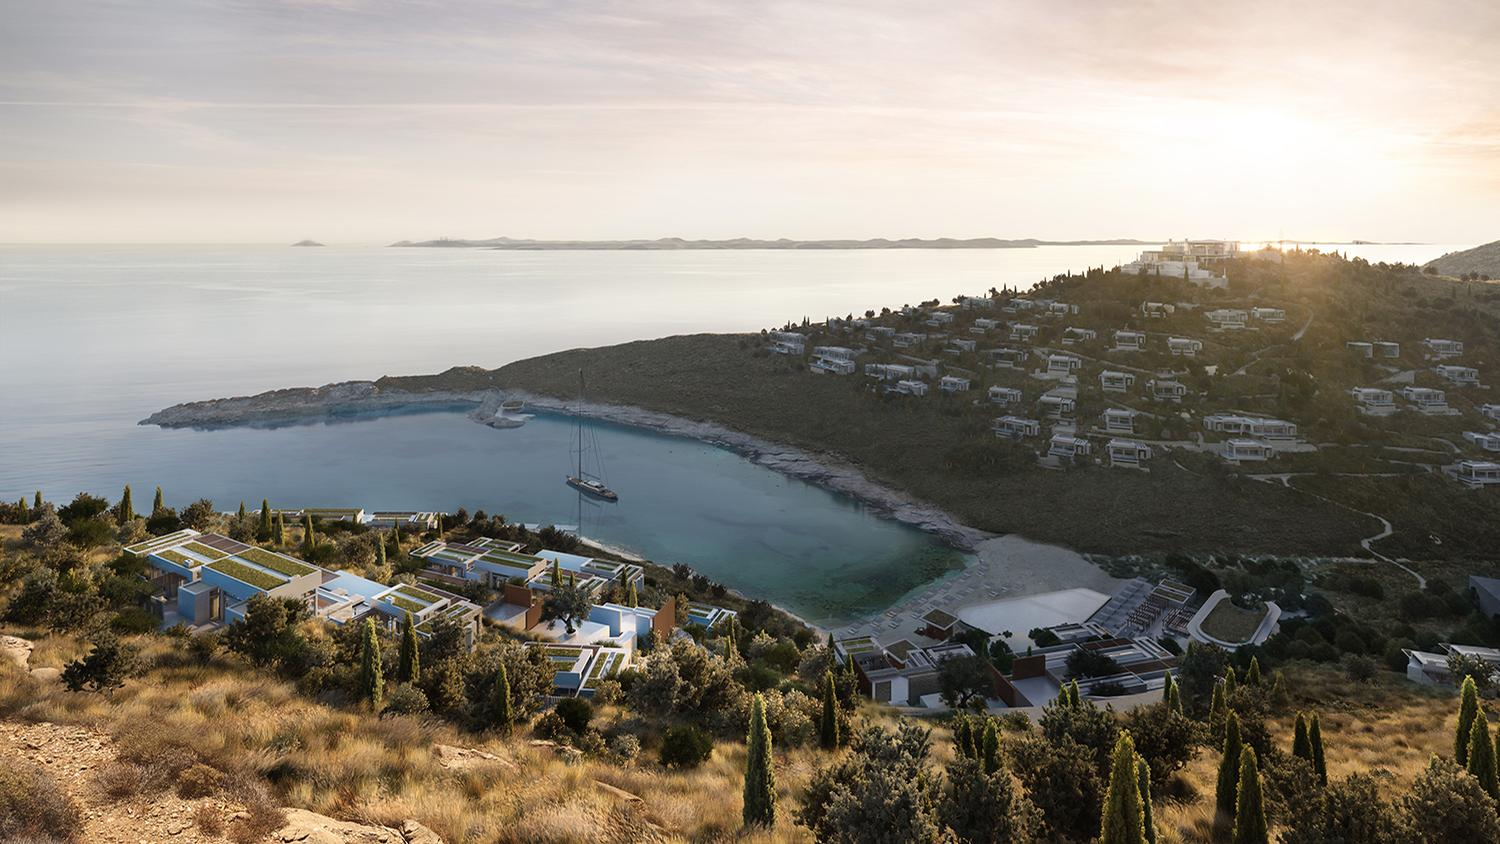 One&Only Kéa Island will be the second One&Only resort in Europe following the opening of One&Only Portonovi in Montenegro in 2020